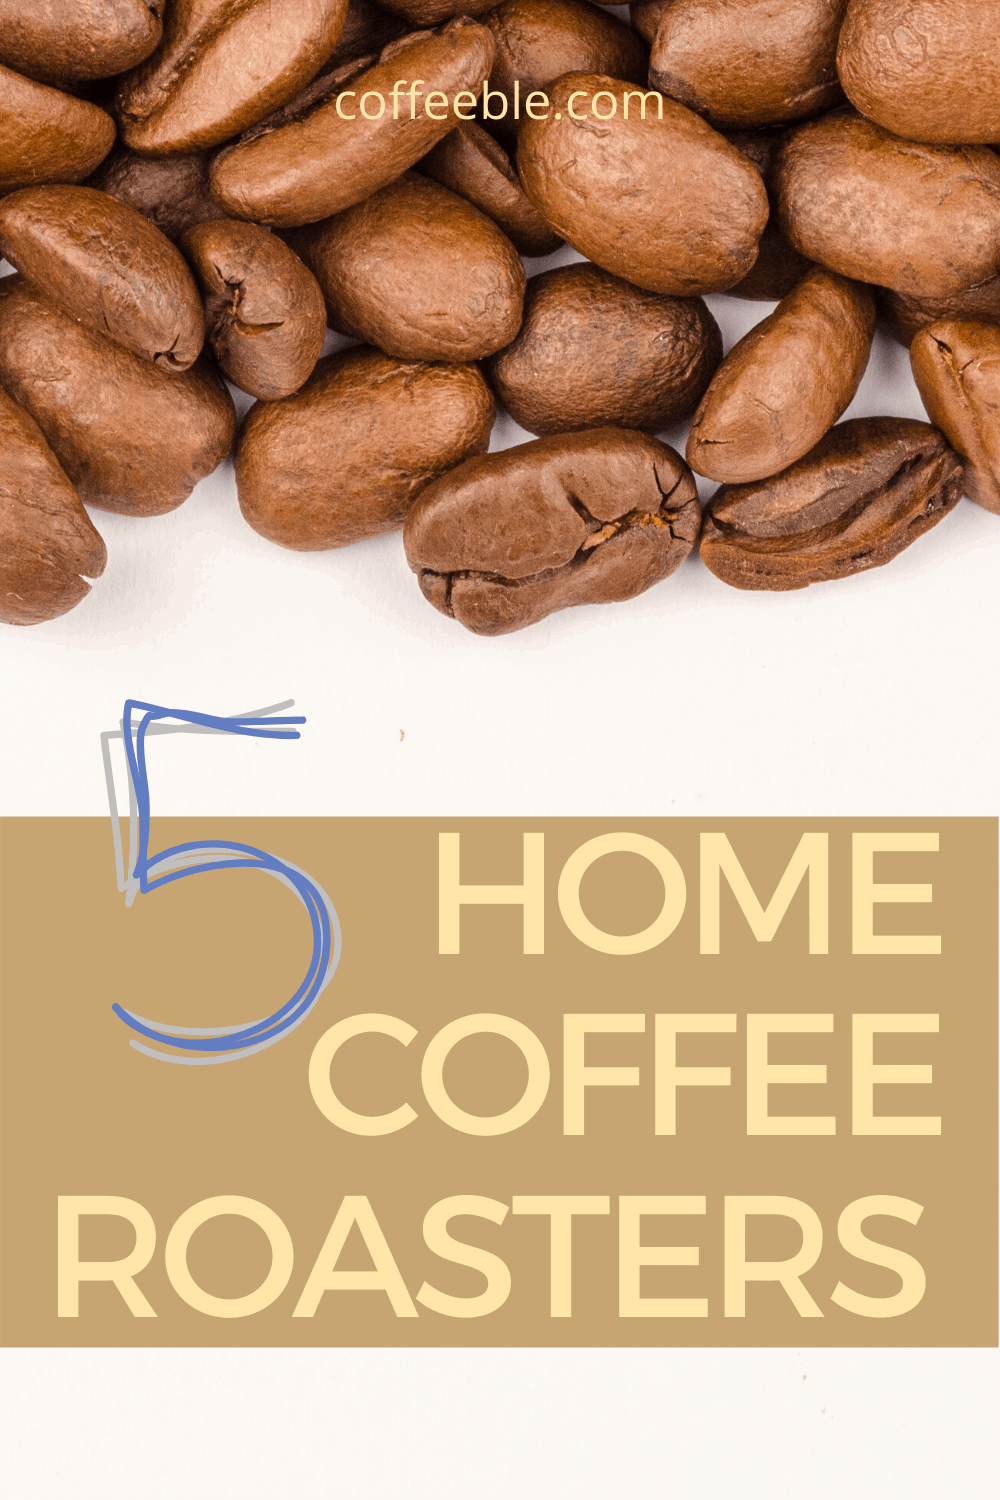 Roasted coffee beans on a poster